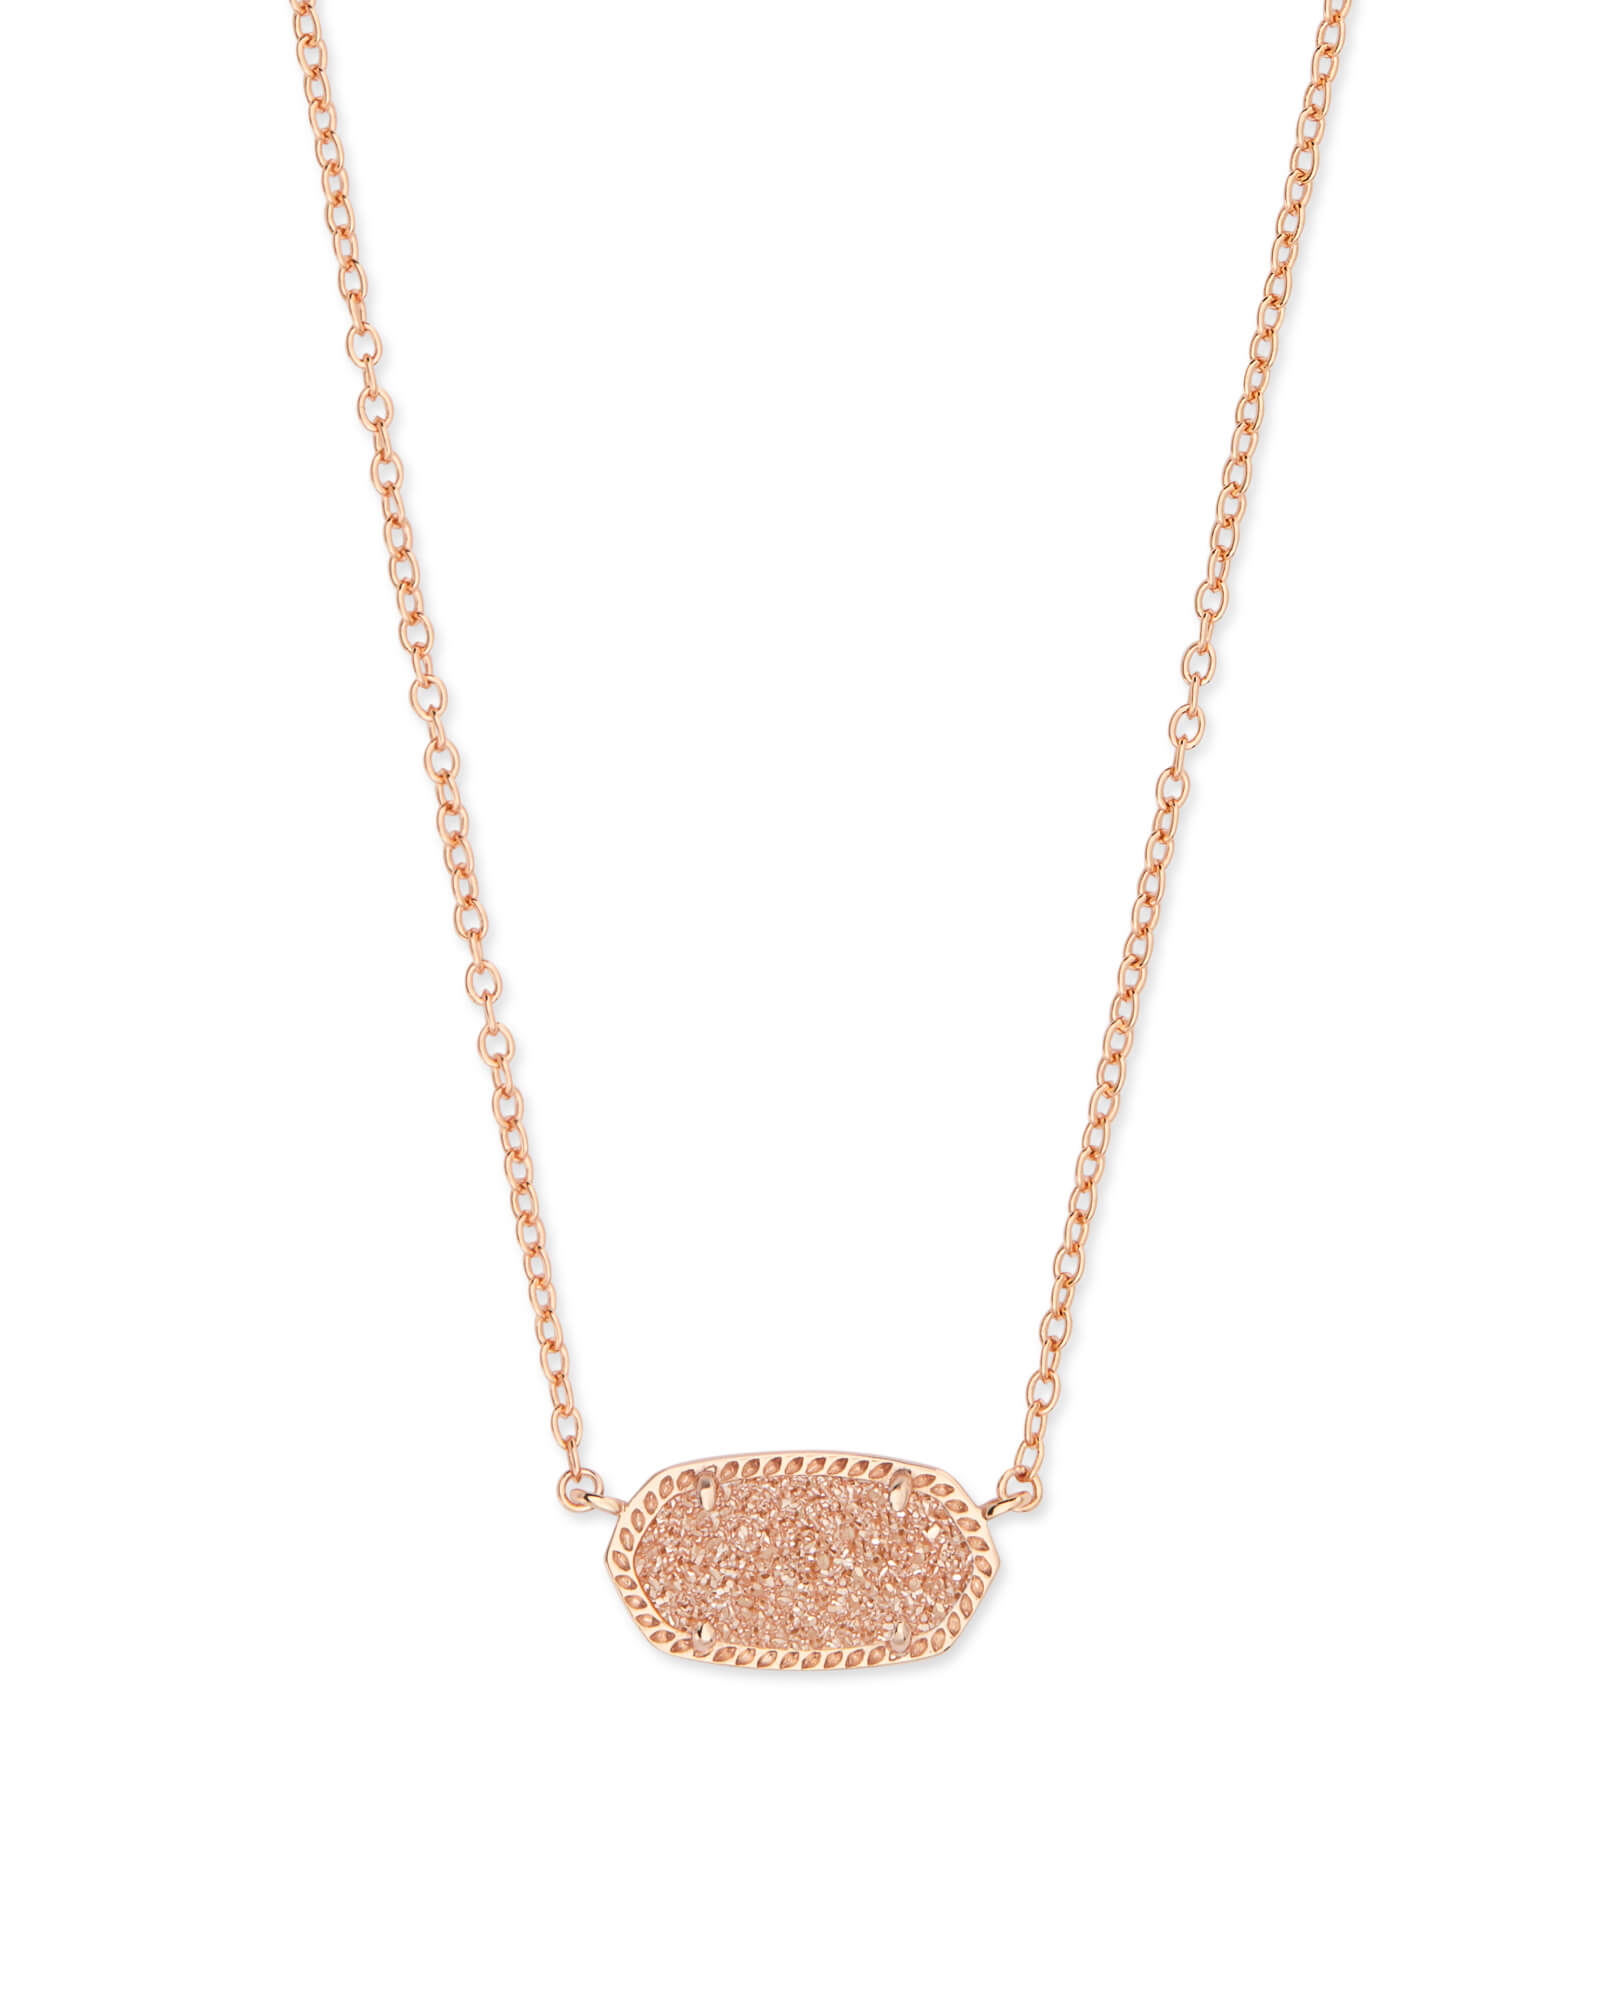 Elisa Rose Gold Pendant Necklace in Sand Drusy